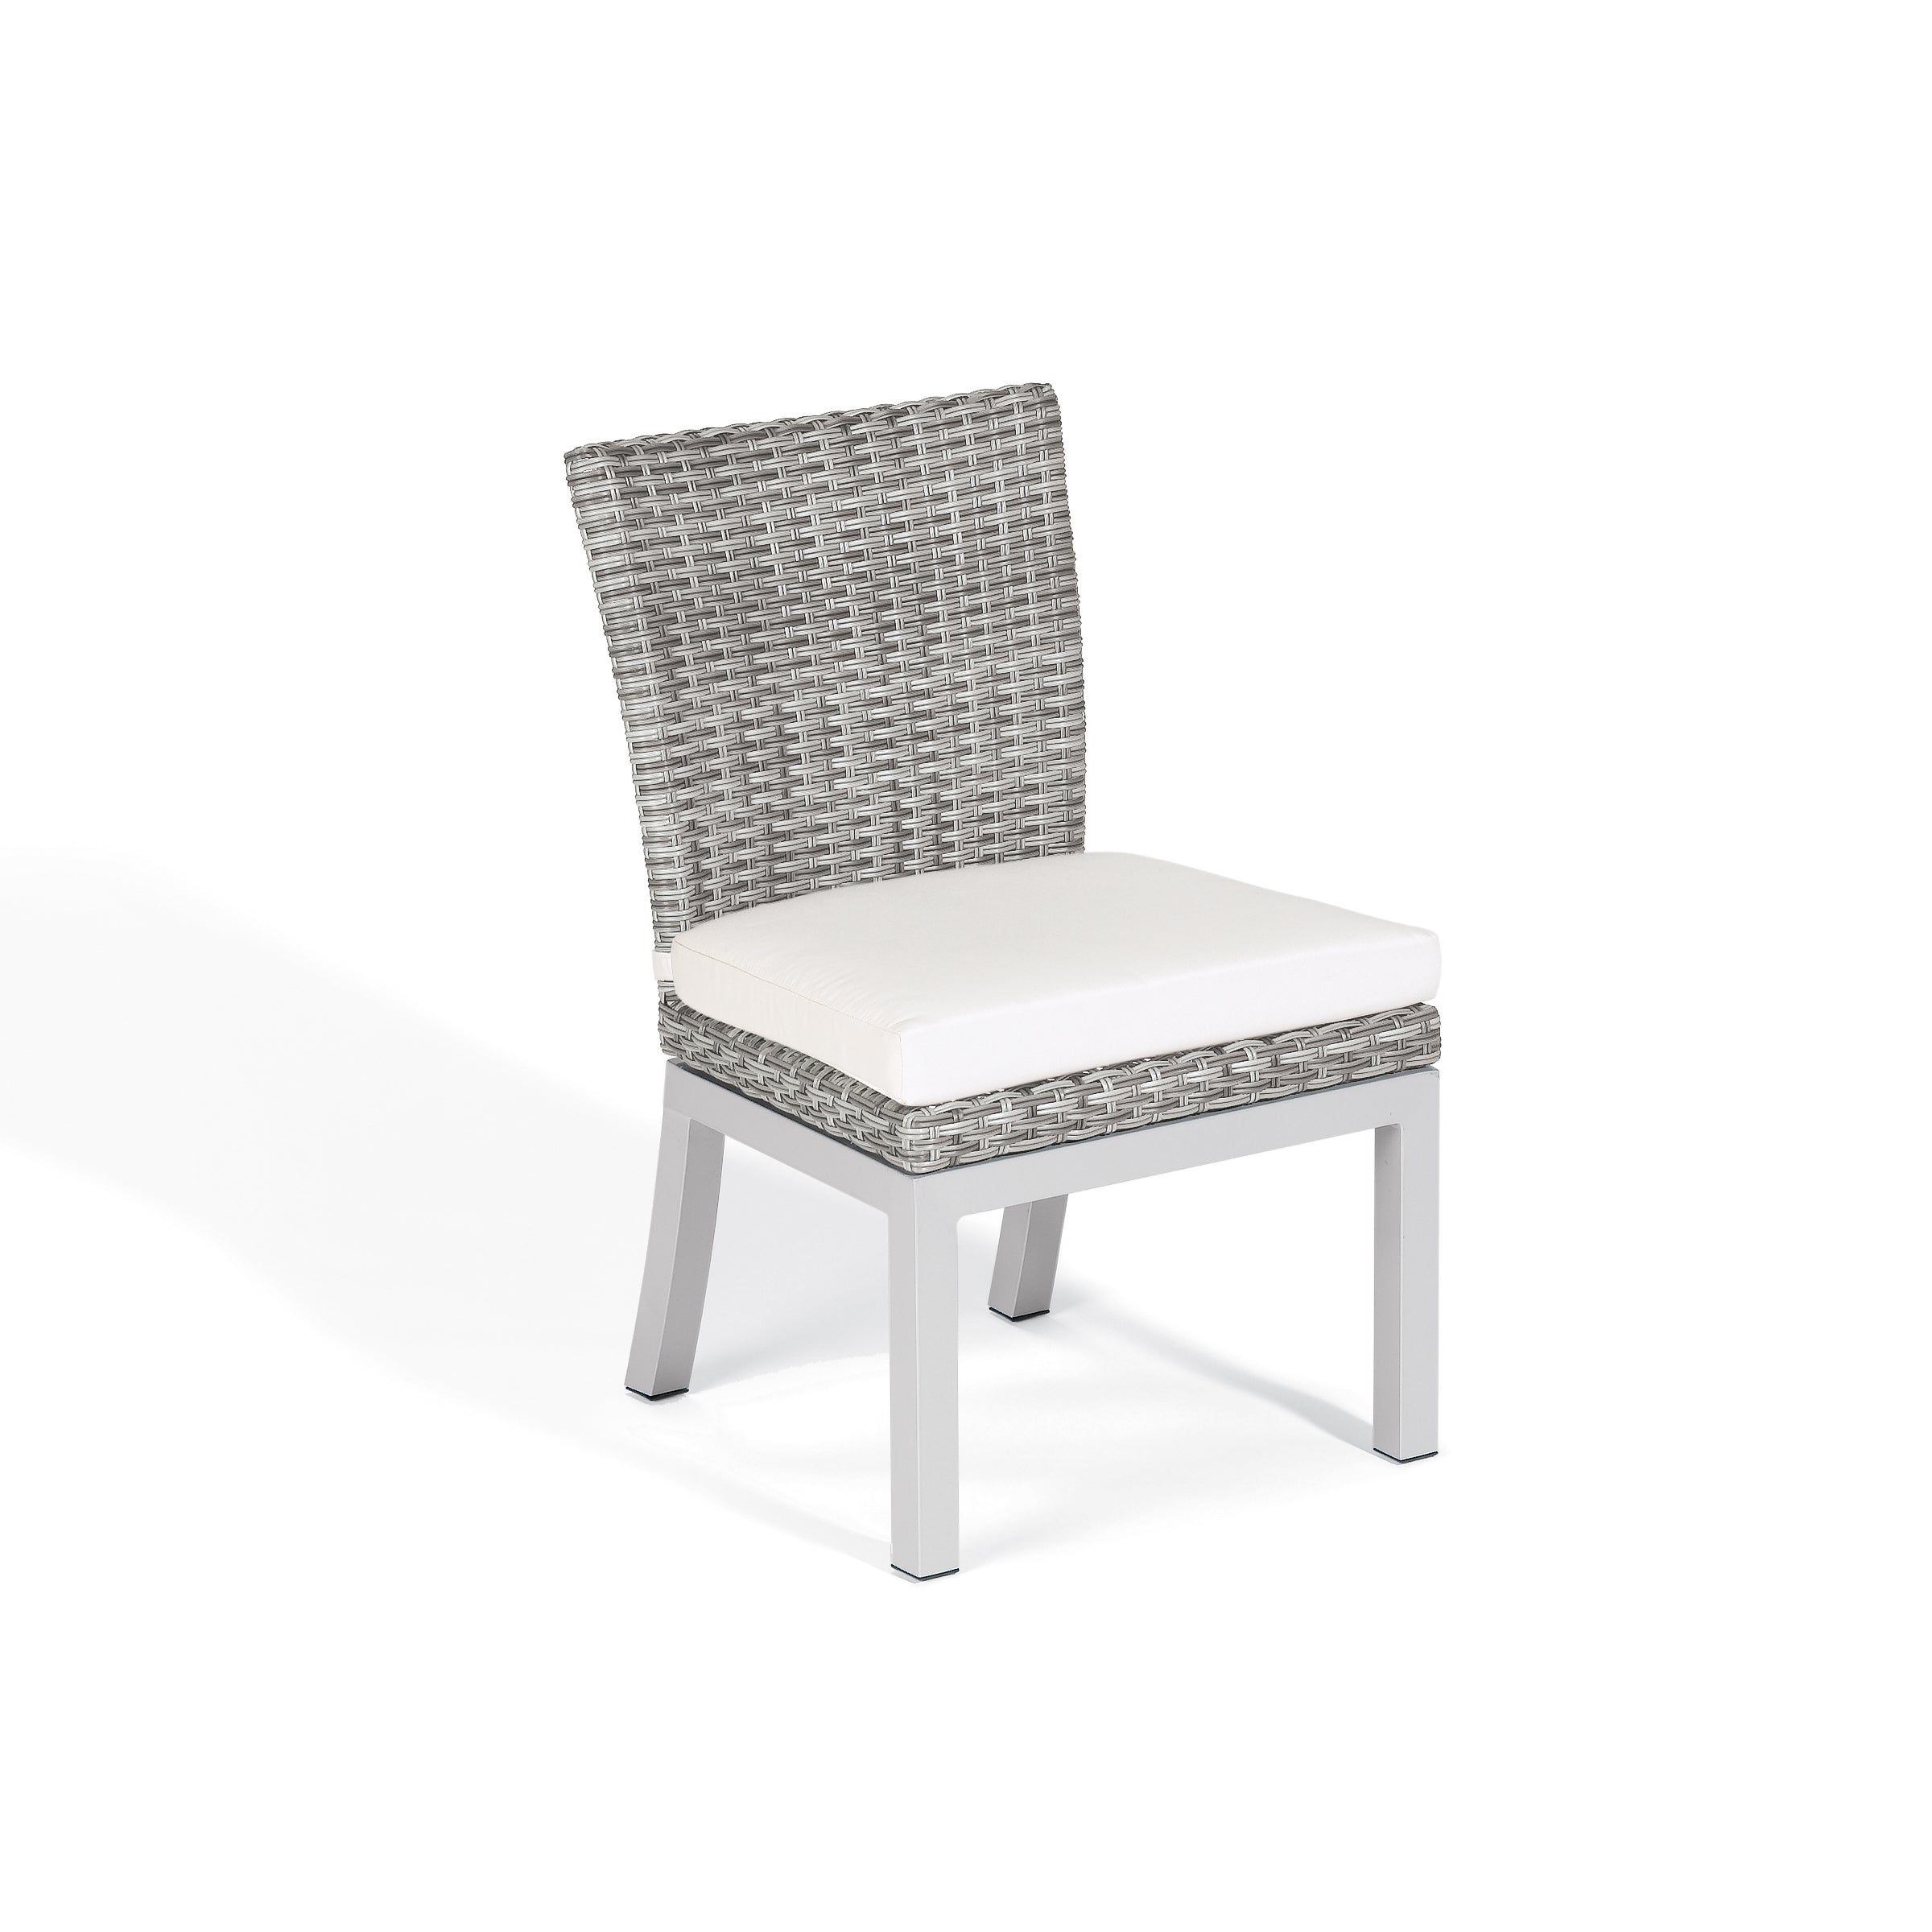 Beau Shop Oxford Garden Travira Woven Side Chair With Powder Coated Aluminum  Legs, Eggshell White Polyester Cushion (Set Of 2)   Free Shipping Today ...